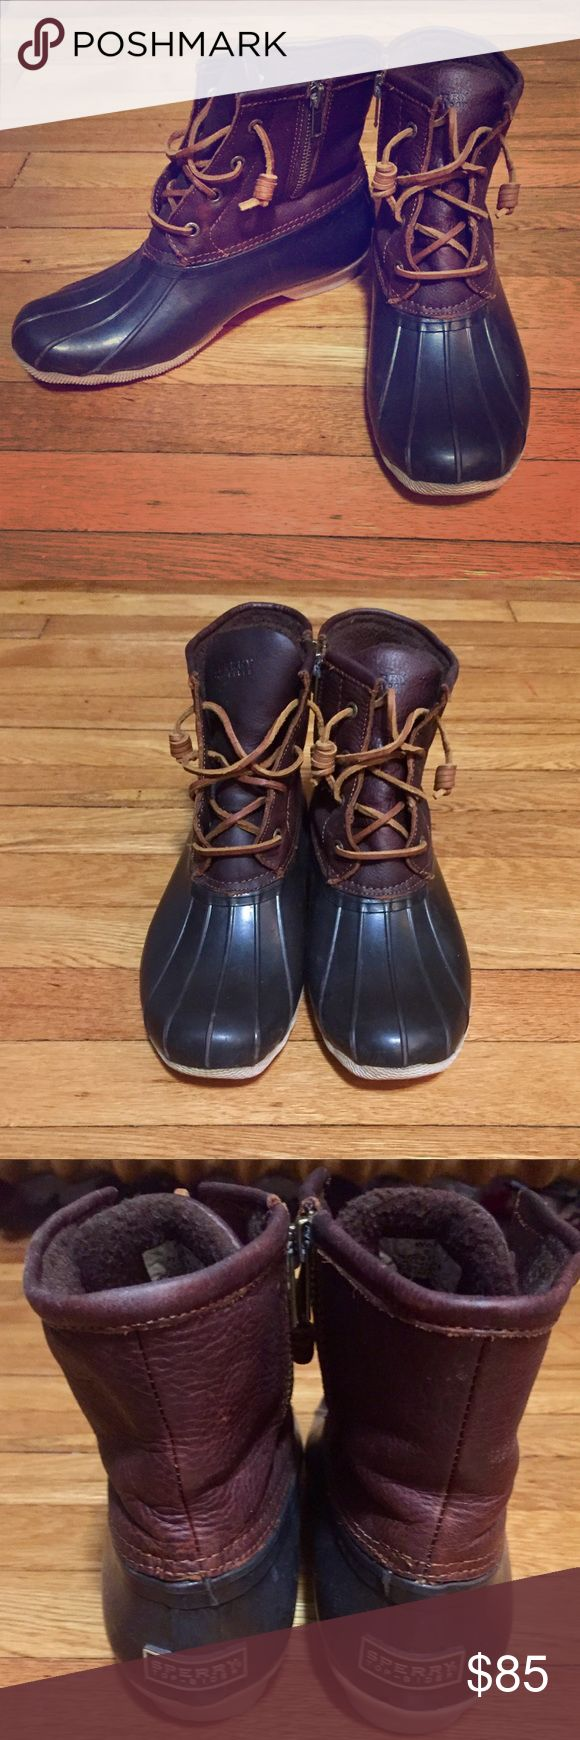 Sperry Duck Boots - Size 8 (women's) 100% Authentic. Waterproof  Only worn 3 times. Nothing wrong with them at all, look practically like new!  Price is firm. Let me know if you would like any more pictures Sperry Shoes Winter & Rain Boots